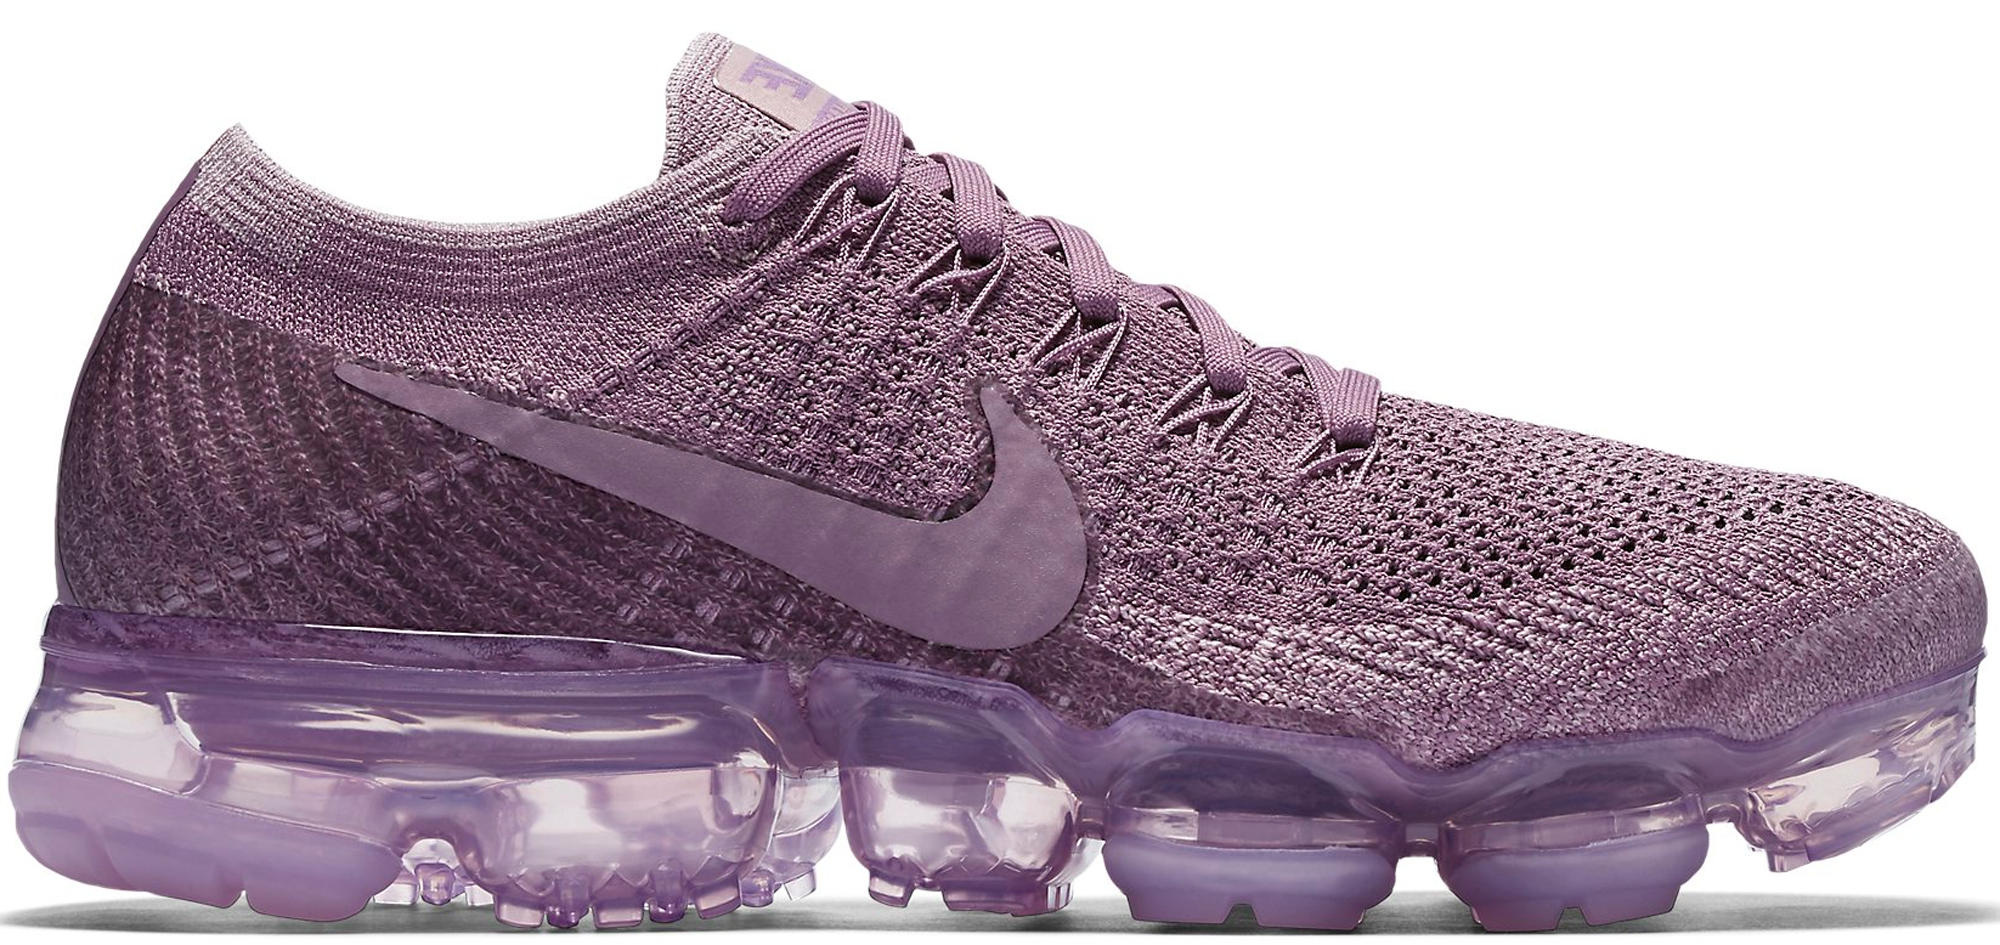 8e075c1e1903c Women s Nike Air VaporMax Violet Dust - StockX News